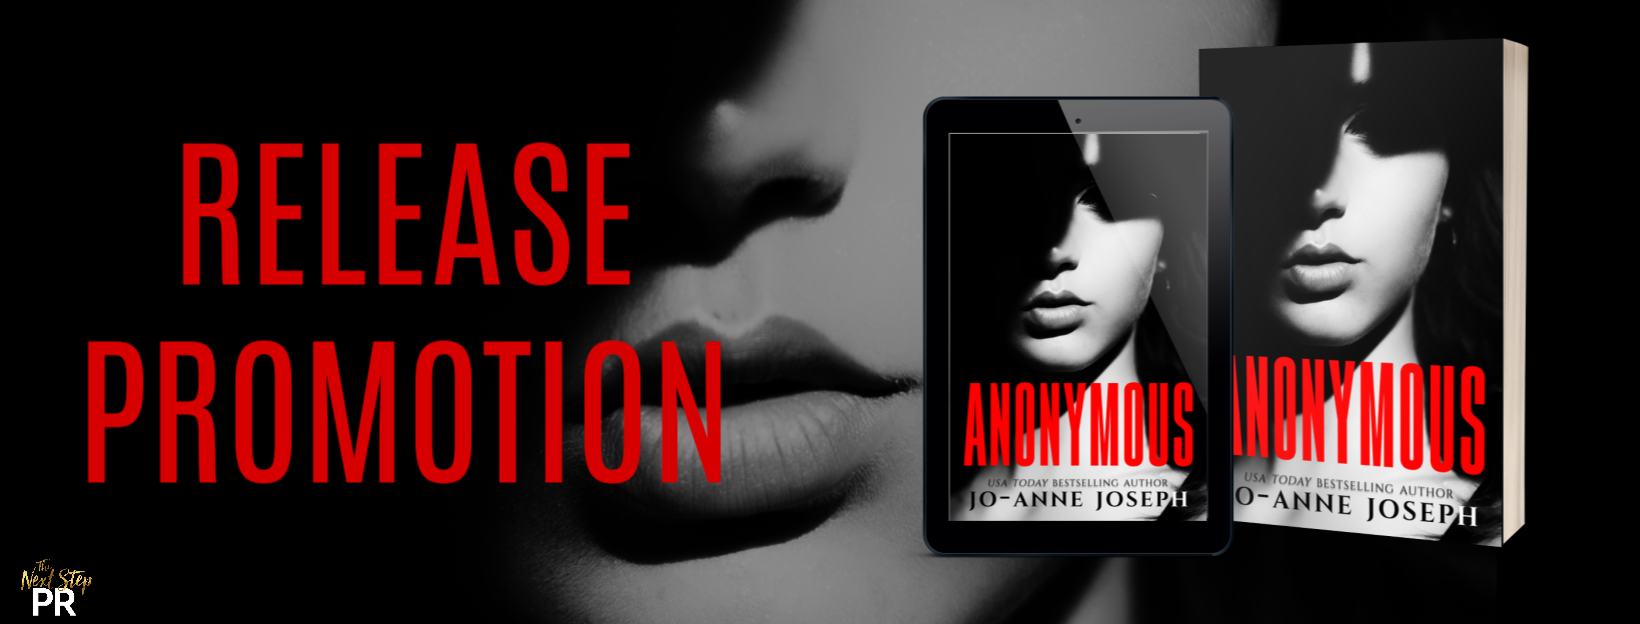 Anonymous By Jo-anne Joseph - Release Promotion - The Clipped Nightingale